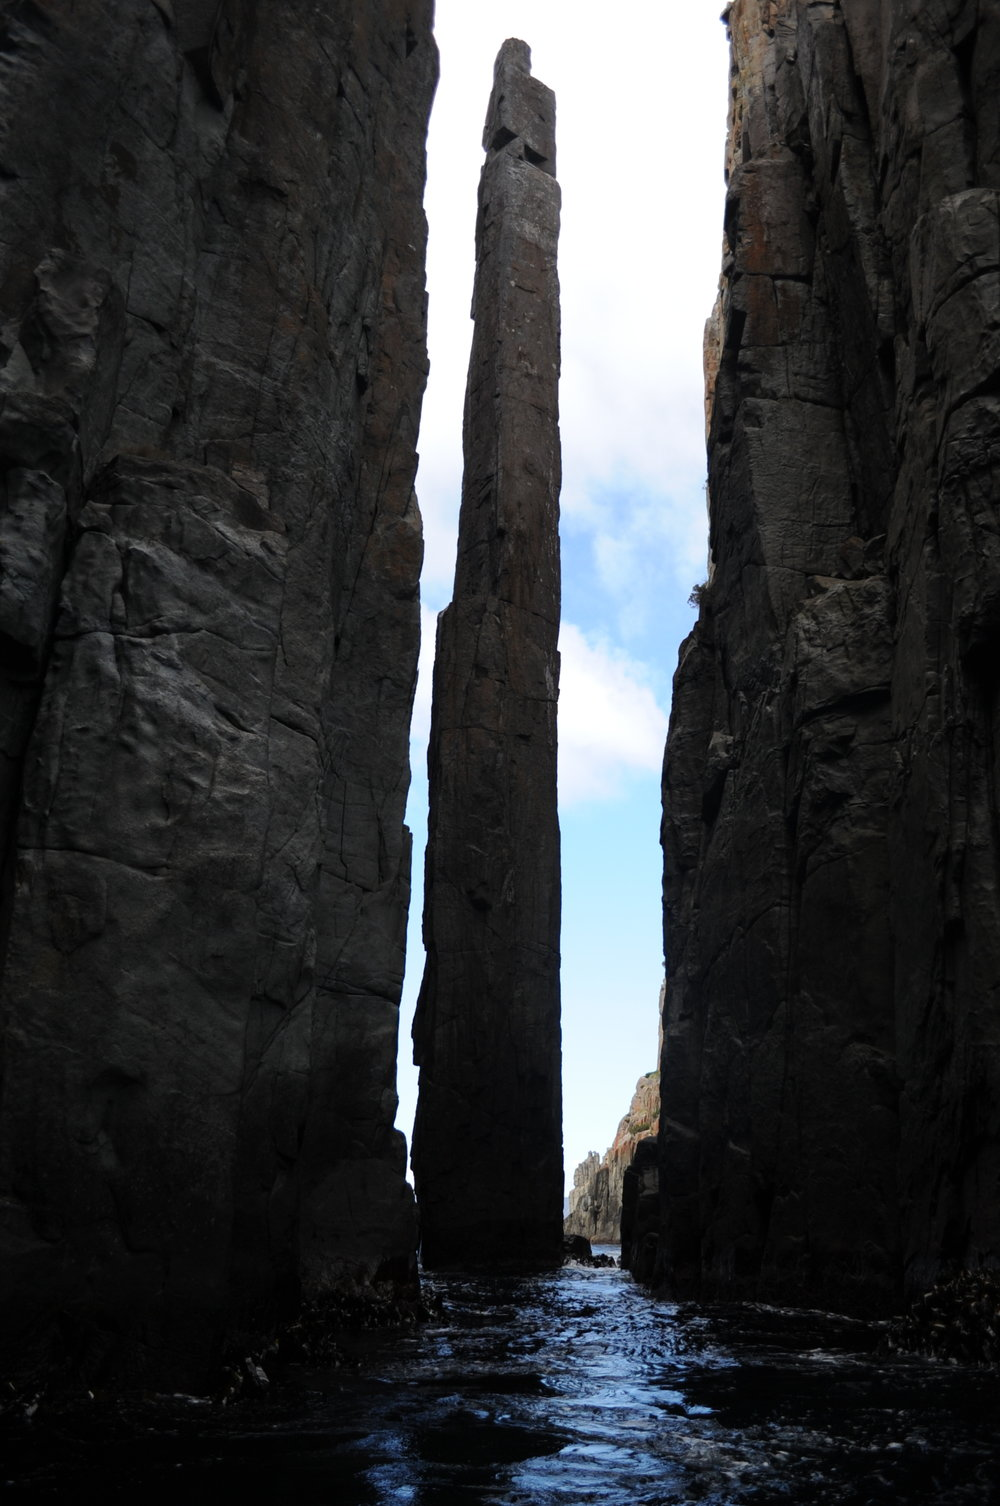 The Totem Pole stands almost 1,000 feet high.